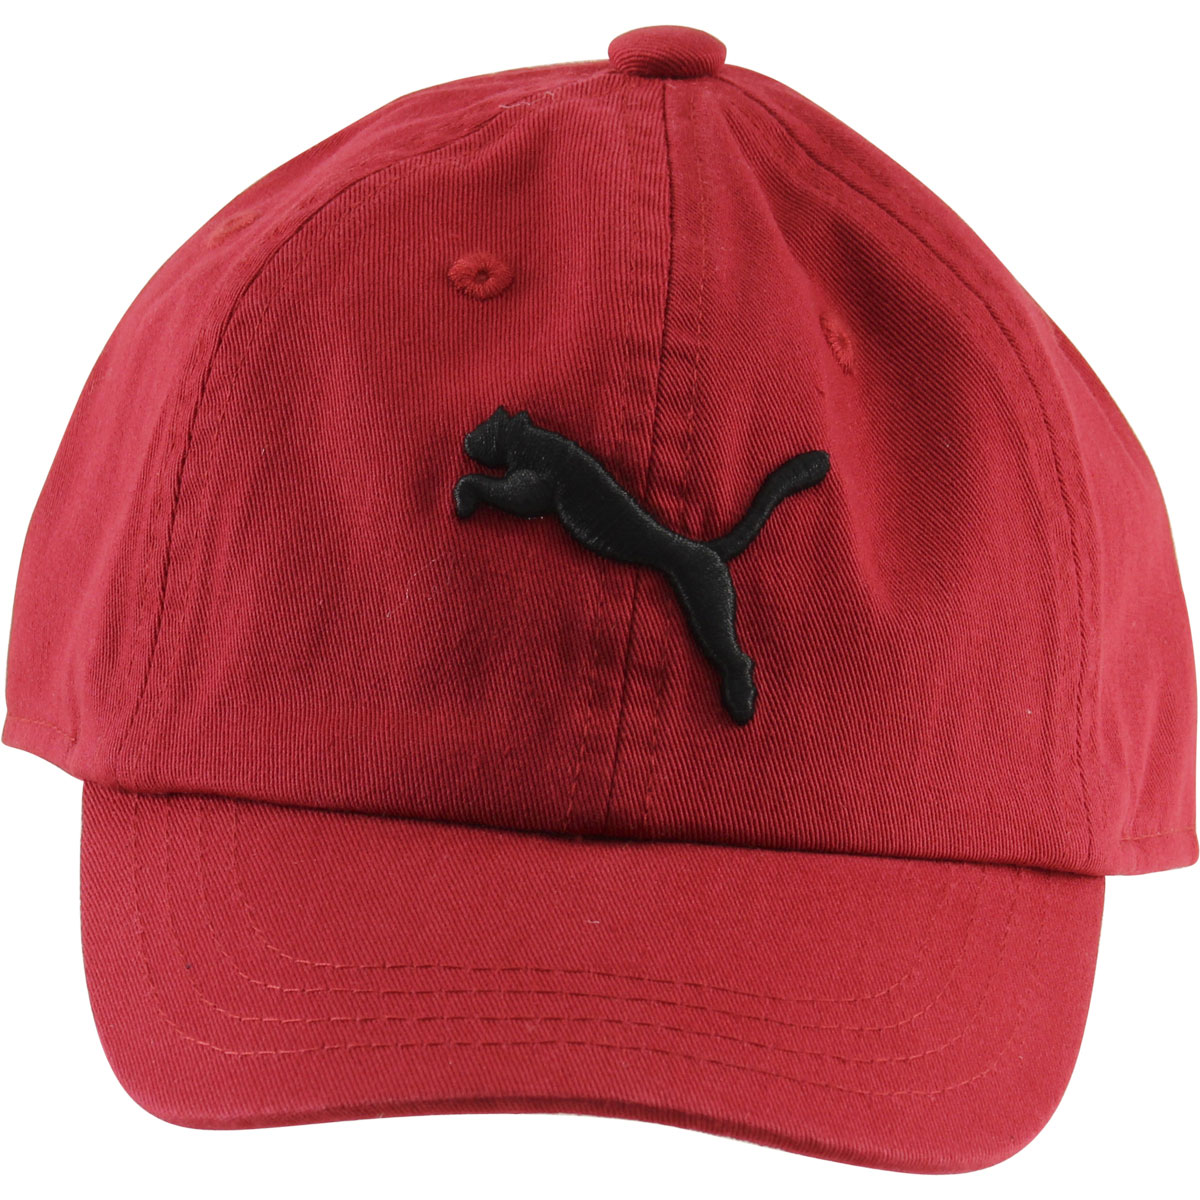 9896d54a737 Puma Boy s Youth Evercat Podium Cotton Baseball Cap Hat